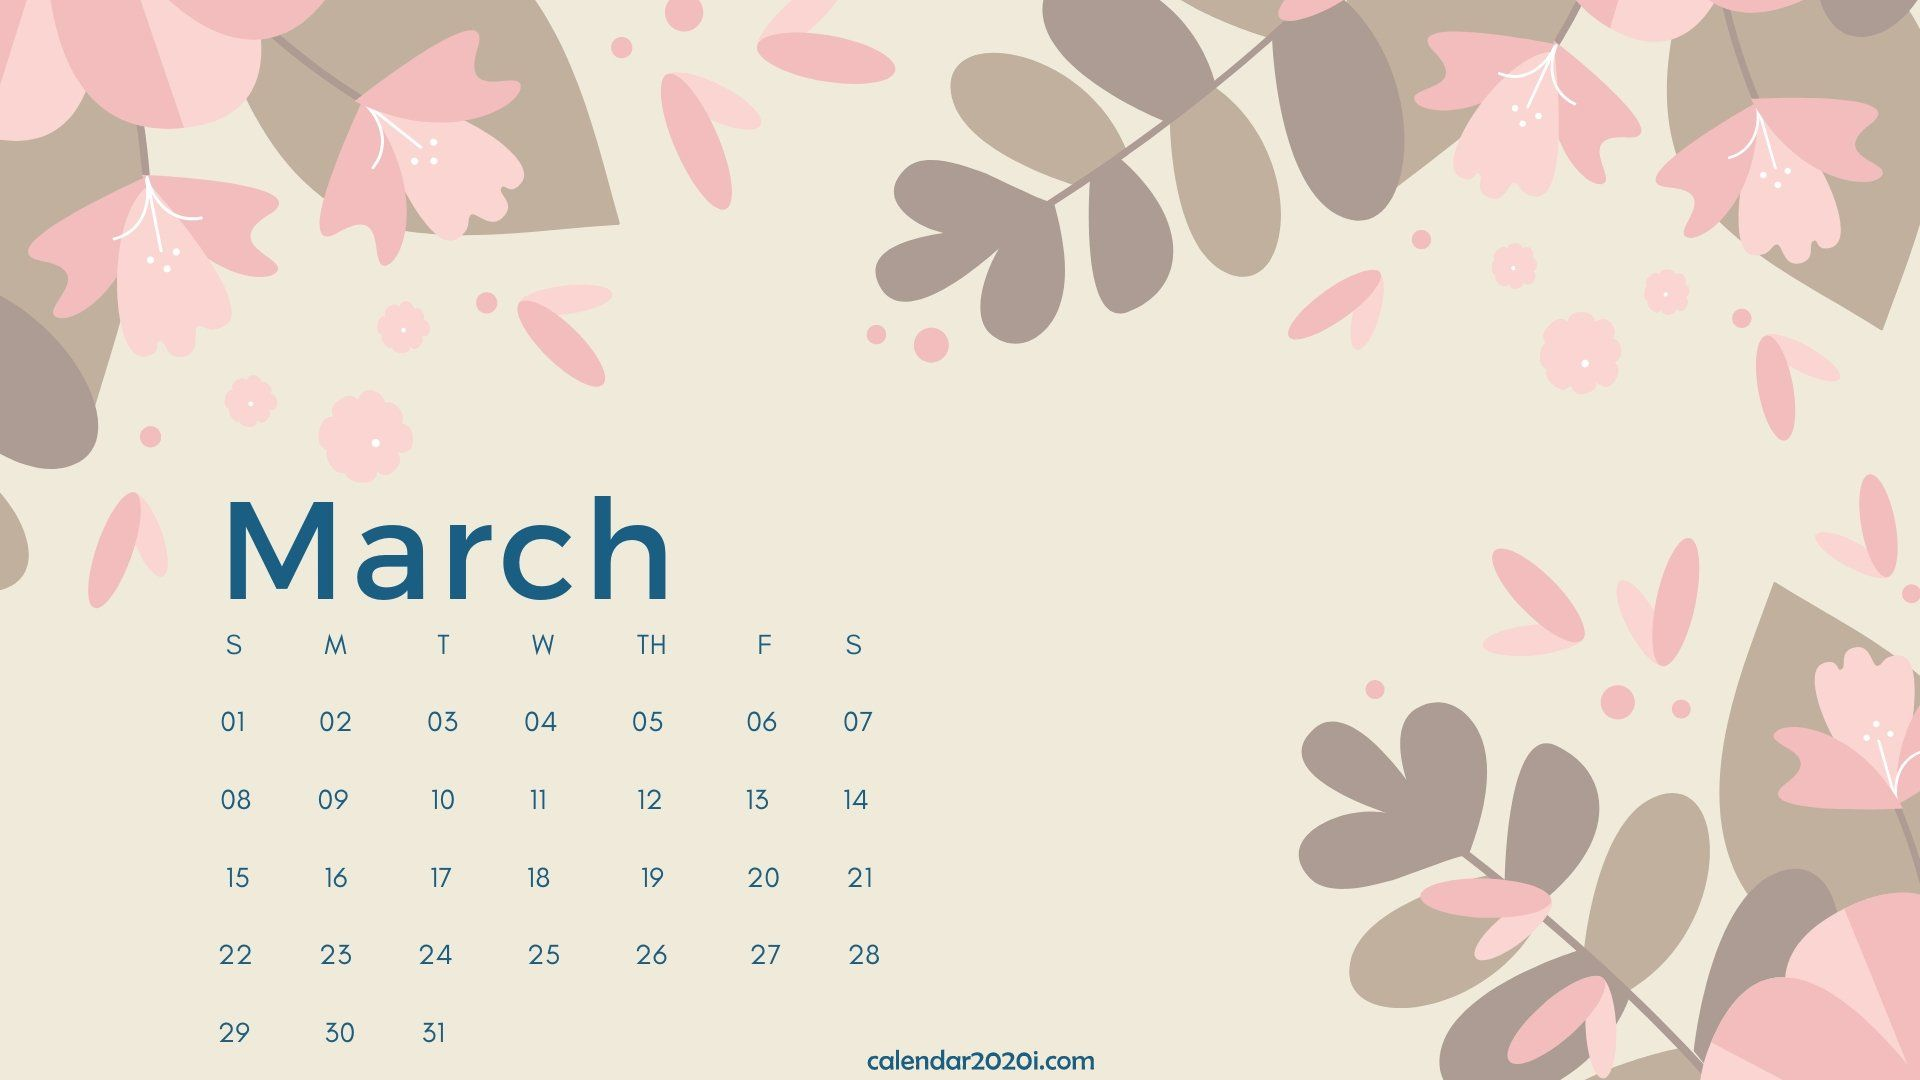 March 2020 Calendar Desktop Wallpaper 2020 Calendars Calendar 1920x1080